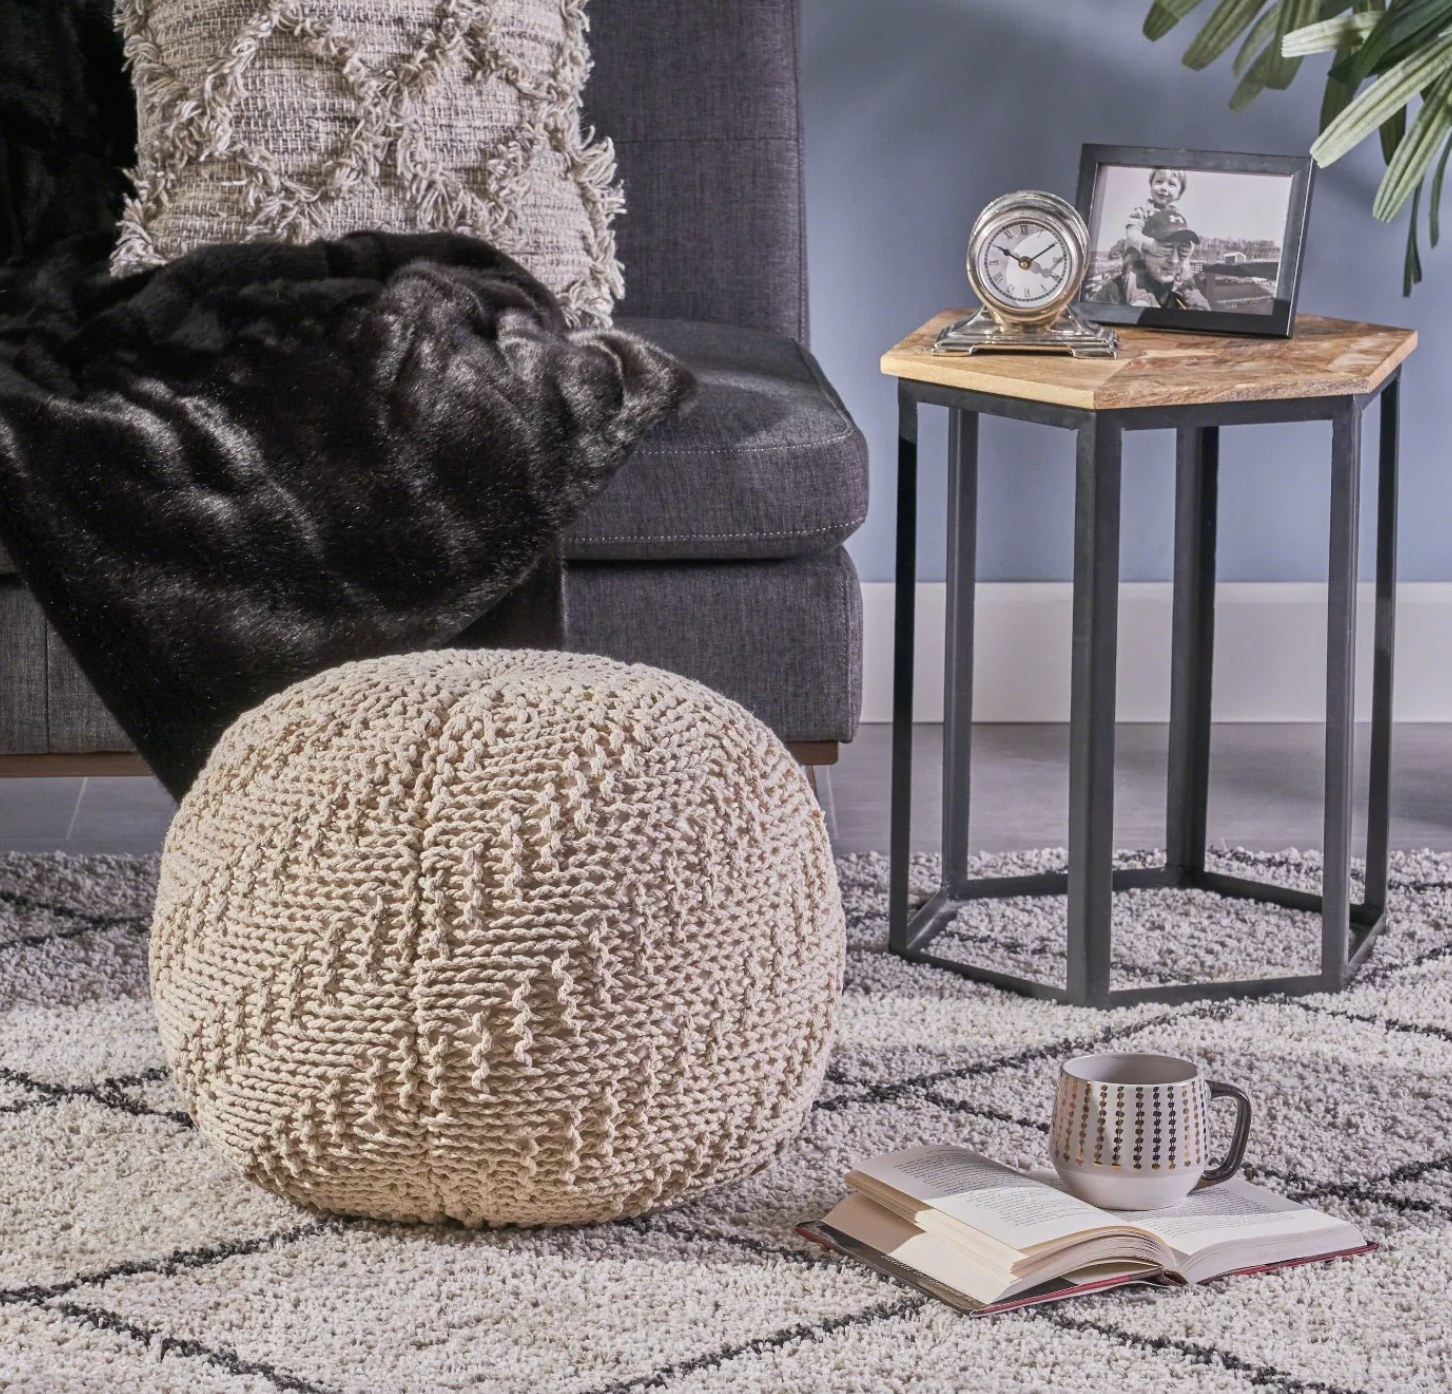 A cream knitted pouf on a rug in a living room